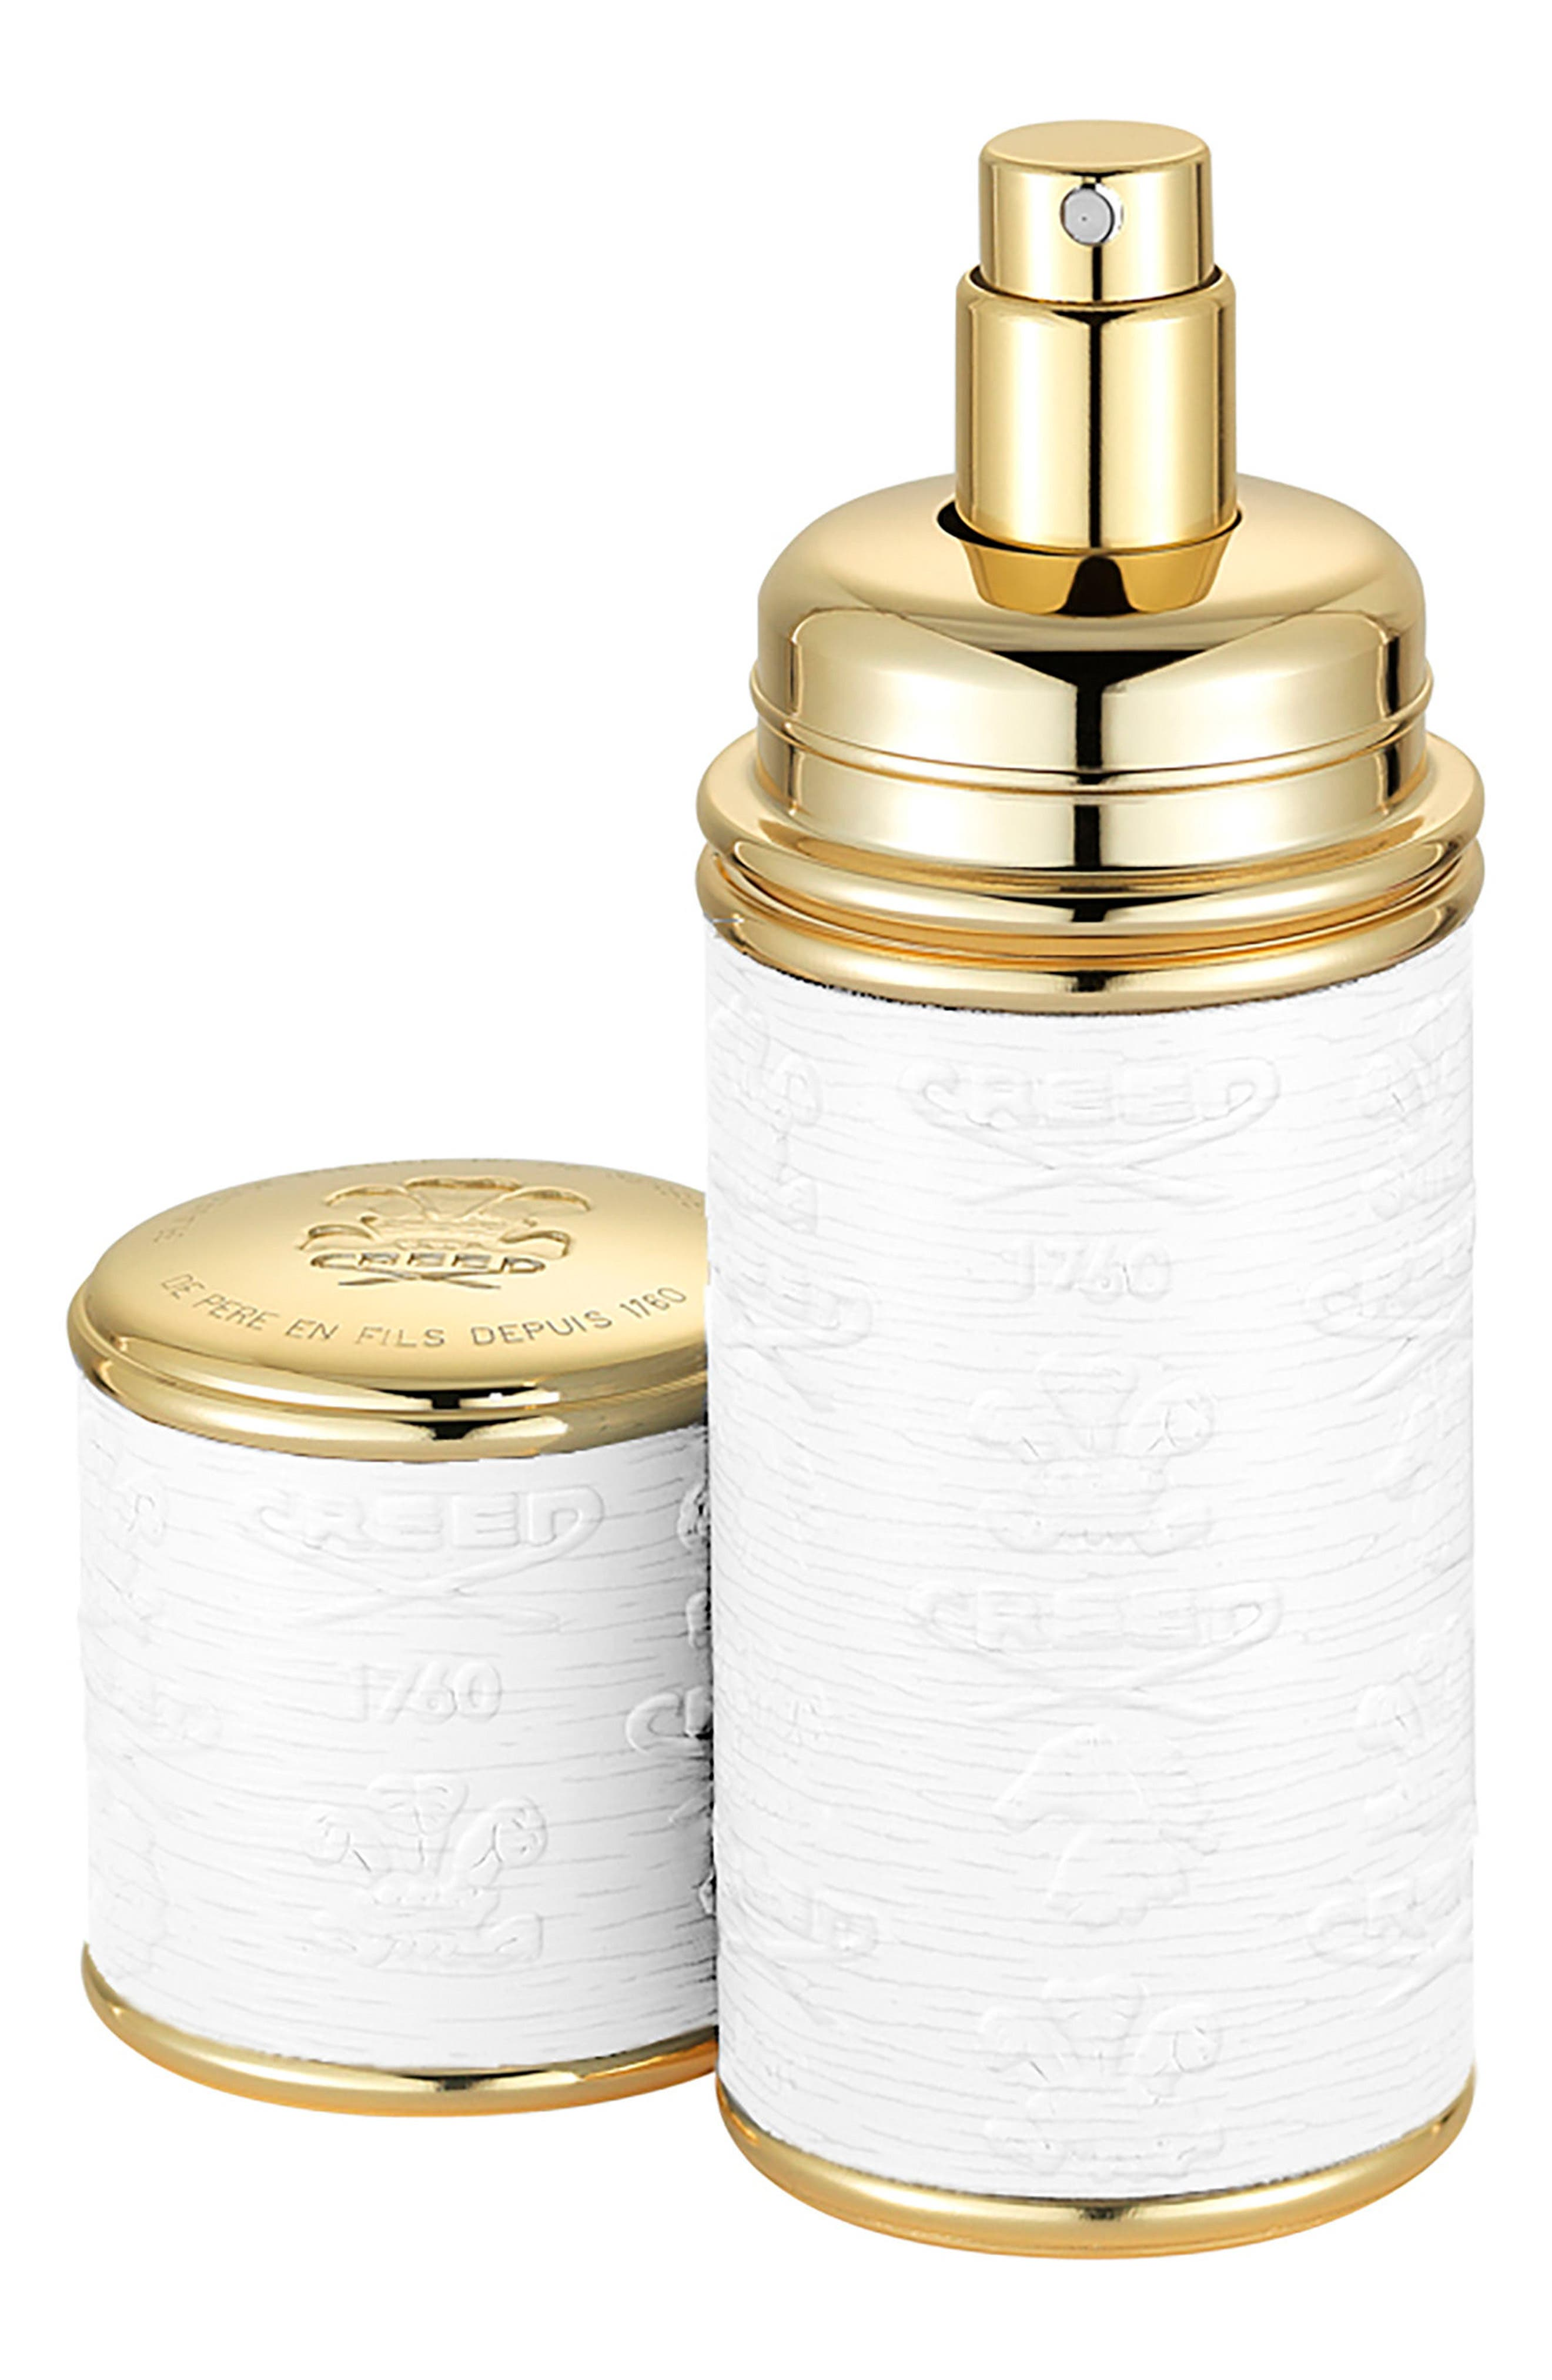 White with Gold Trim Leather Atomizer,                             Main thumbnail 1, color,                             No Color